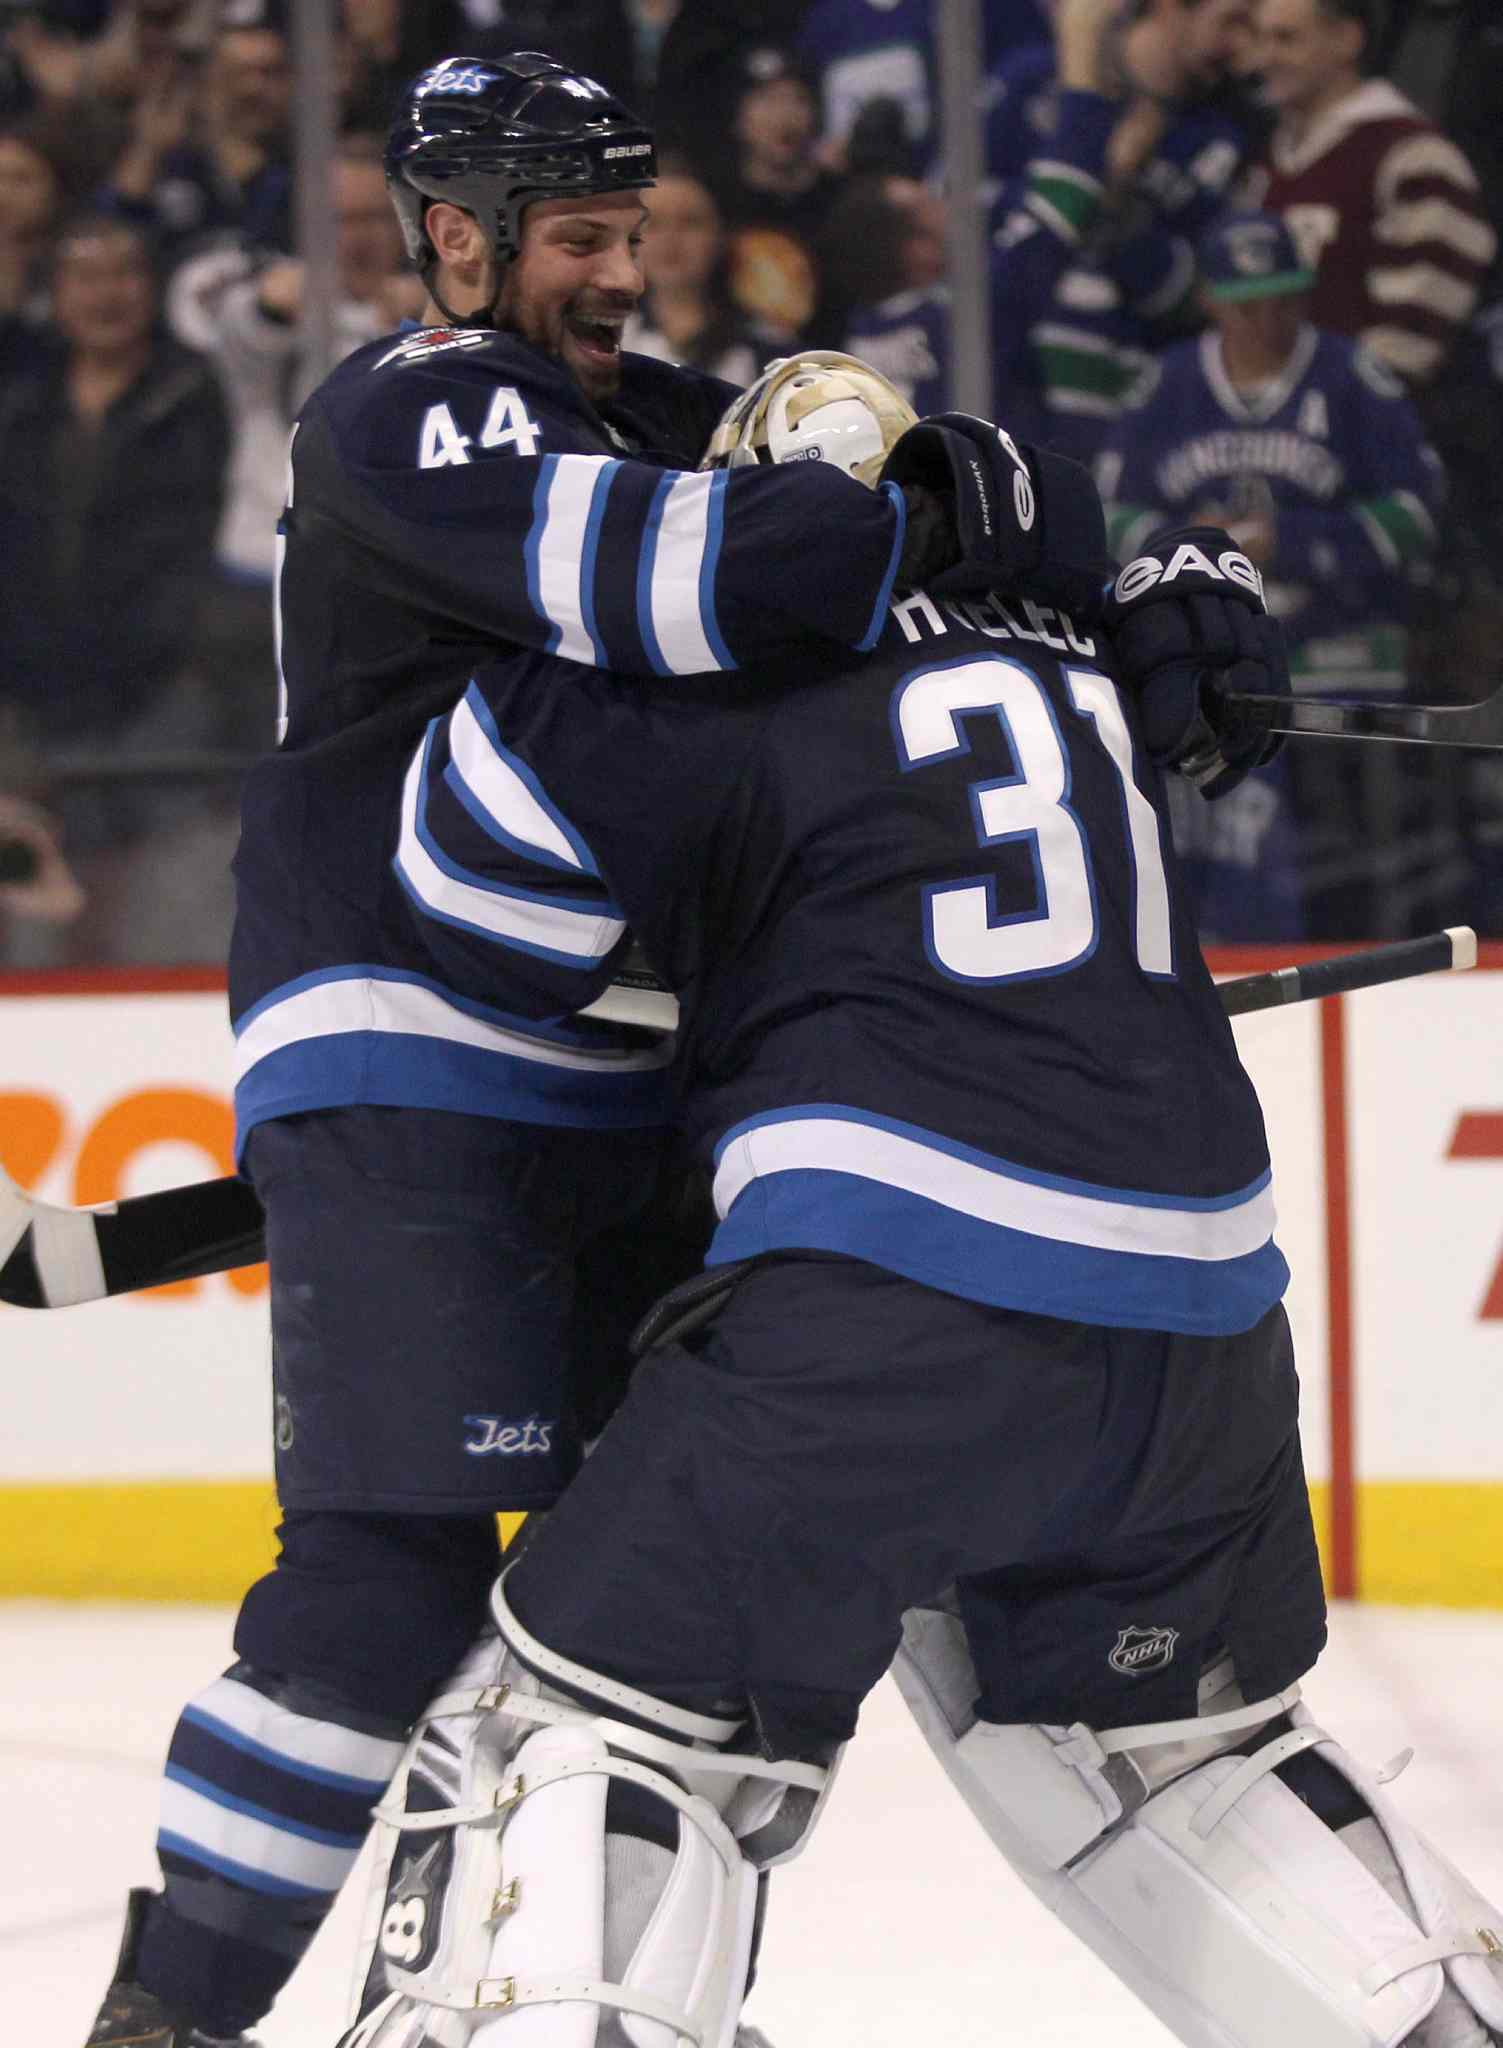 Winnipeg Jets' Zach Bogosian celebrates win over the Vancouver Canucks with goaltender Ondrej Pavelec after the Jets beat the Canucks 4-3 Friday night.